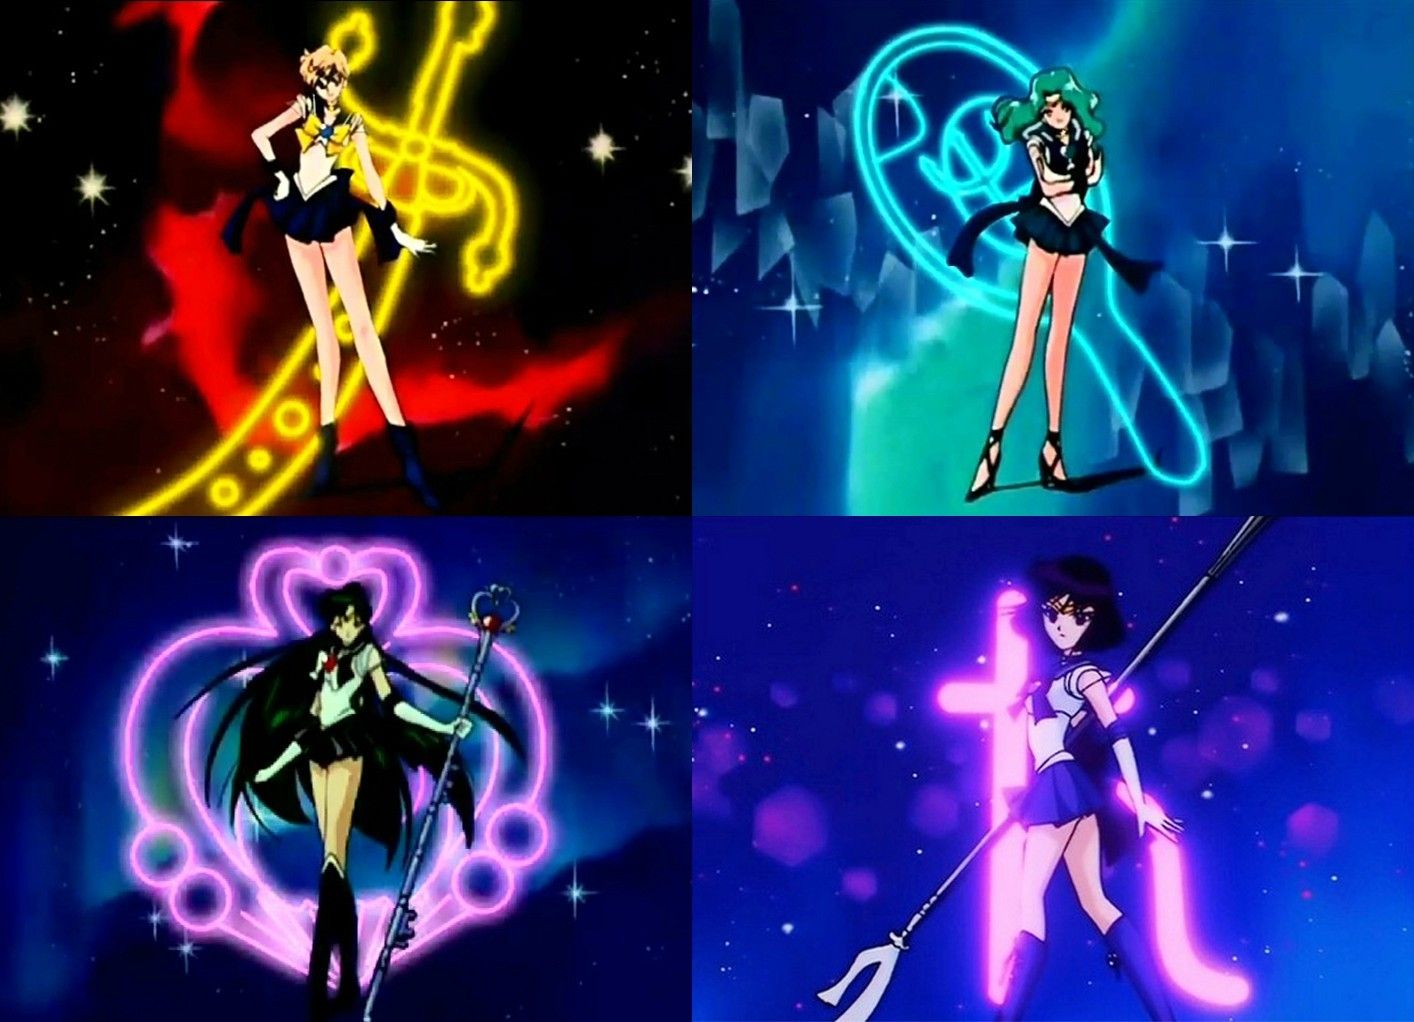 Super Outer Senshi pose